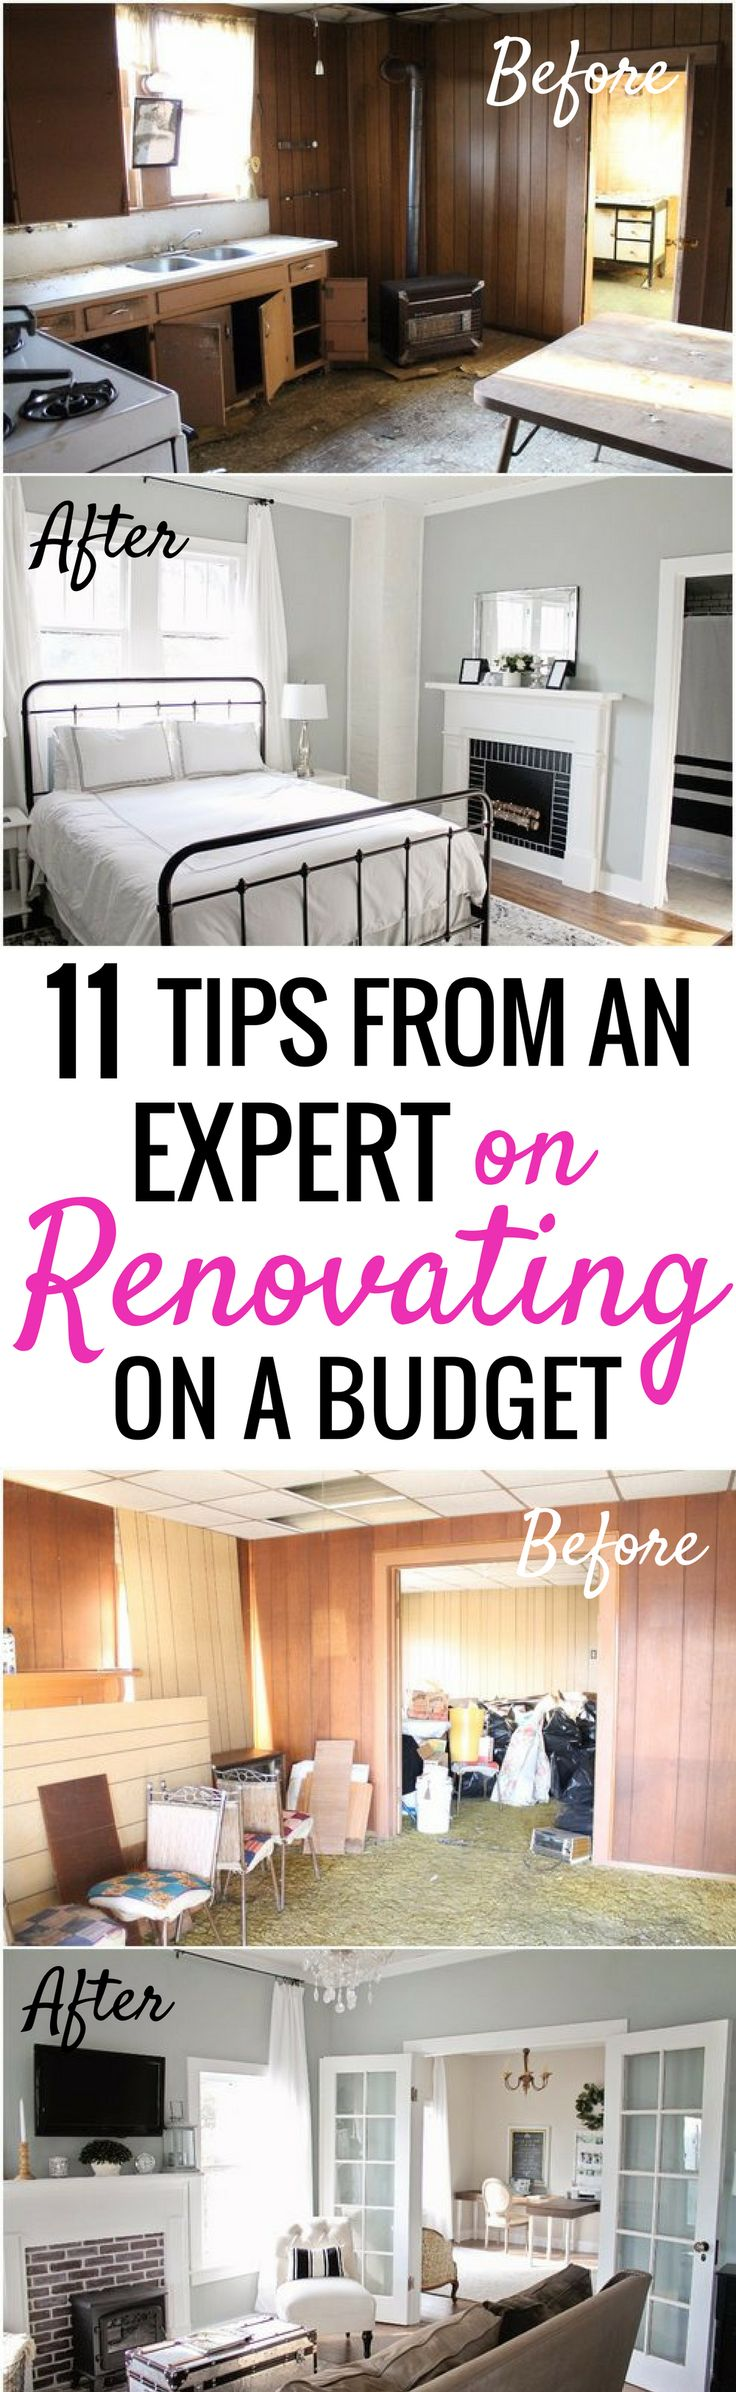 How she renovated and decorated her home on a budget is SO COOL! I'm so glad I found these GREAT tips on decorating on a dime! Now I have some great cheap home decor ideas! Definitely pinning!